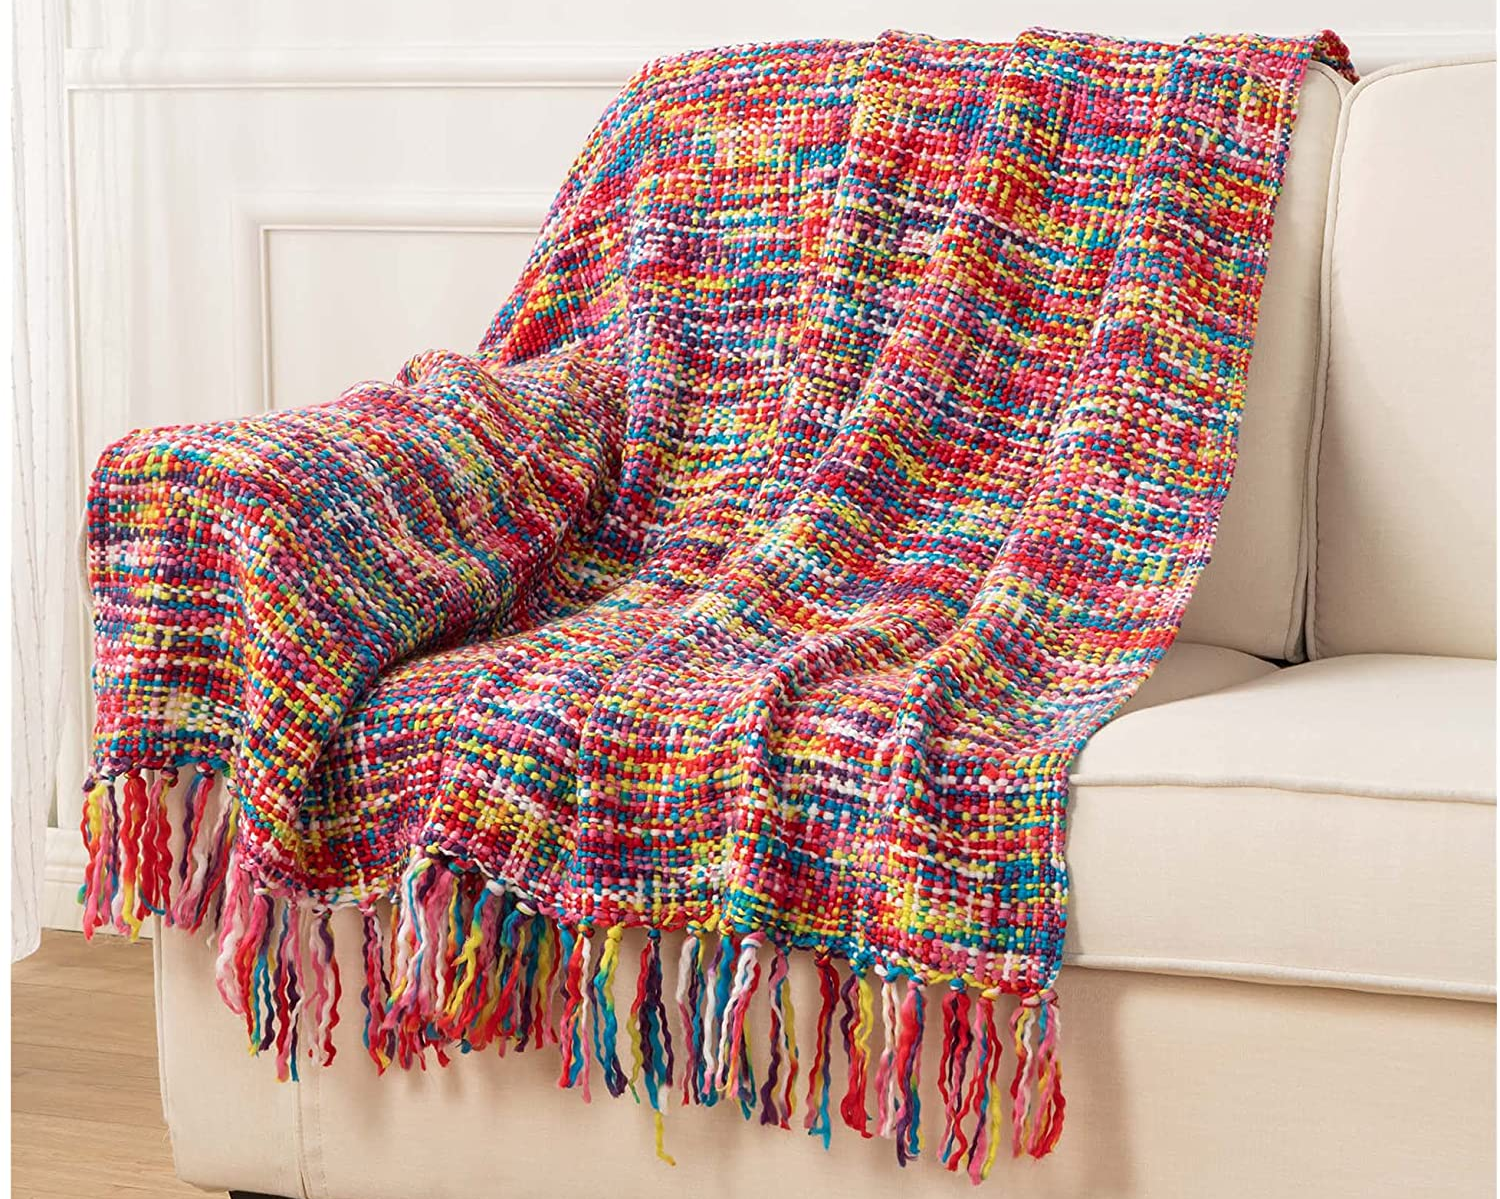 the rainbow blanket draped over a couch